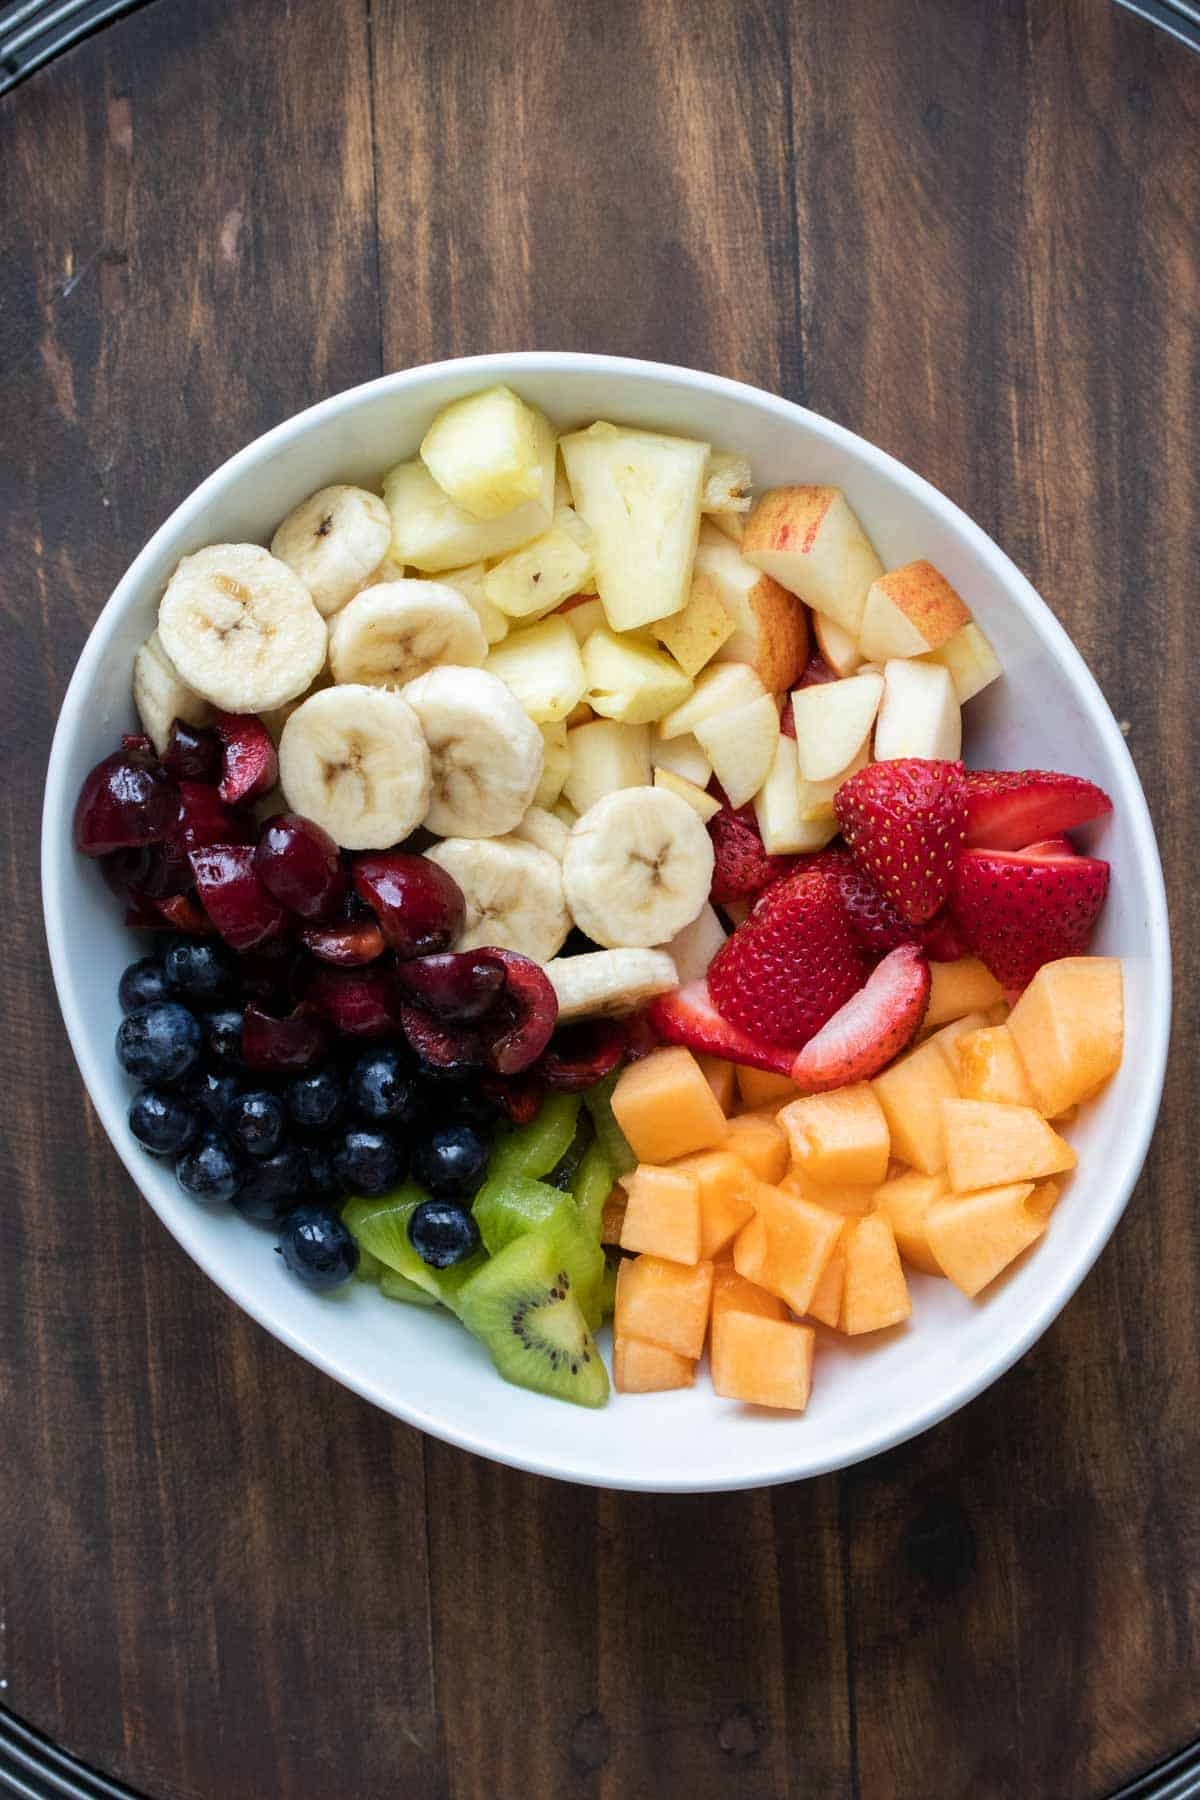 White bowl with sections of cut up fruit